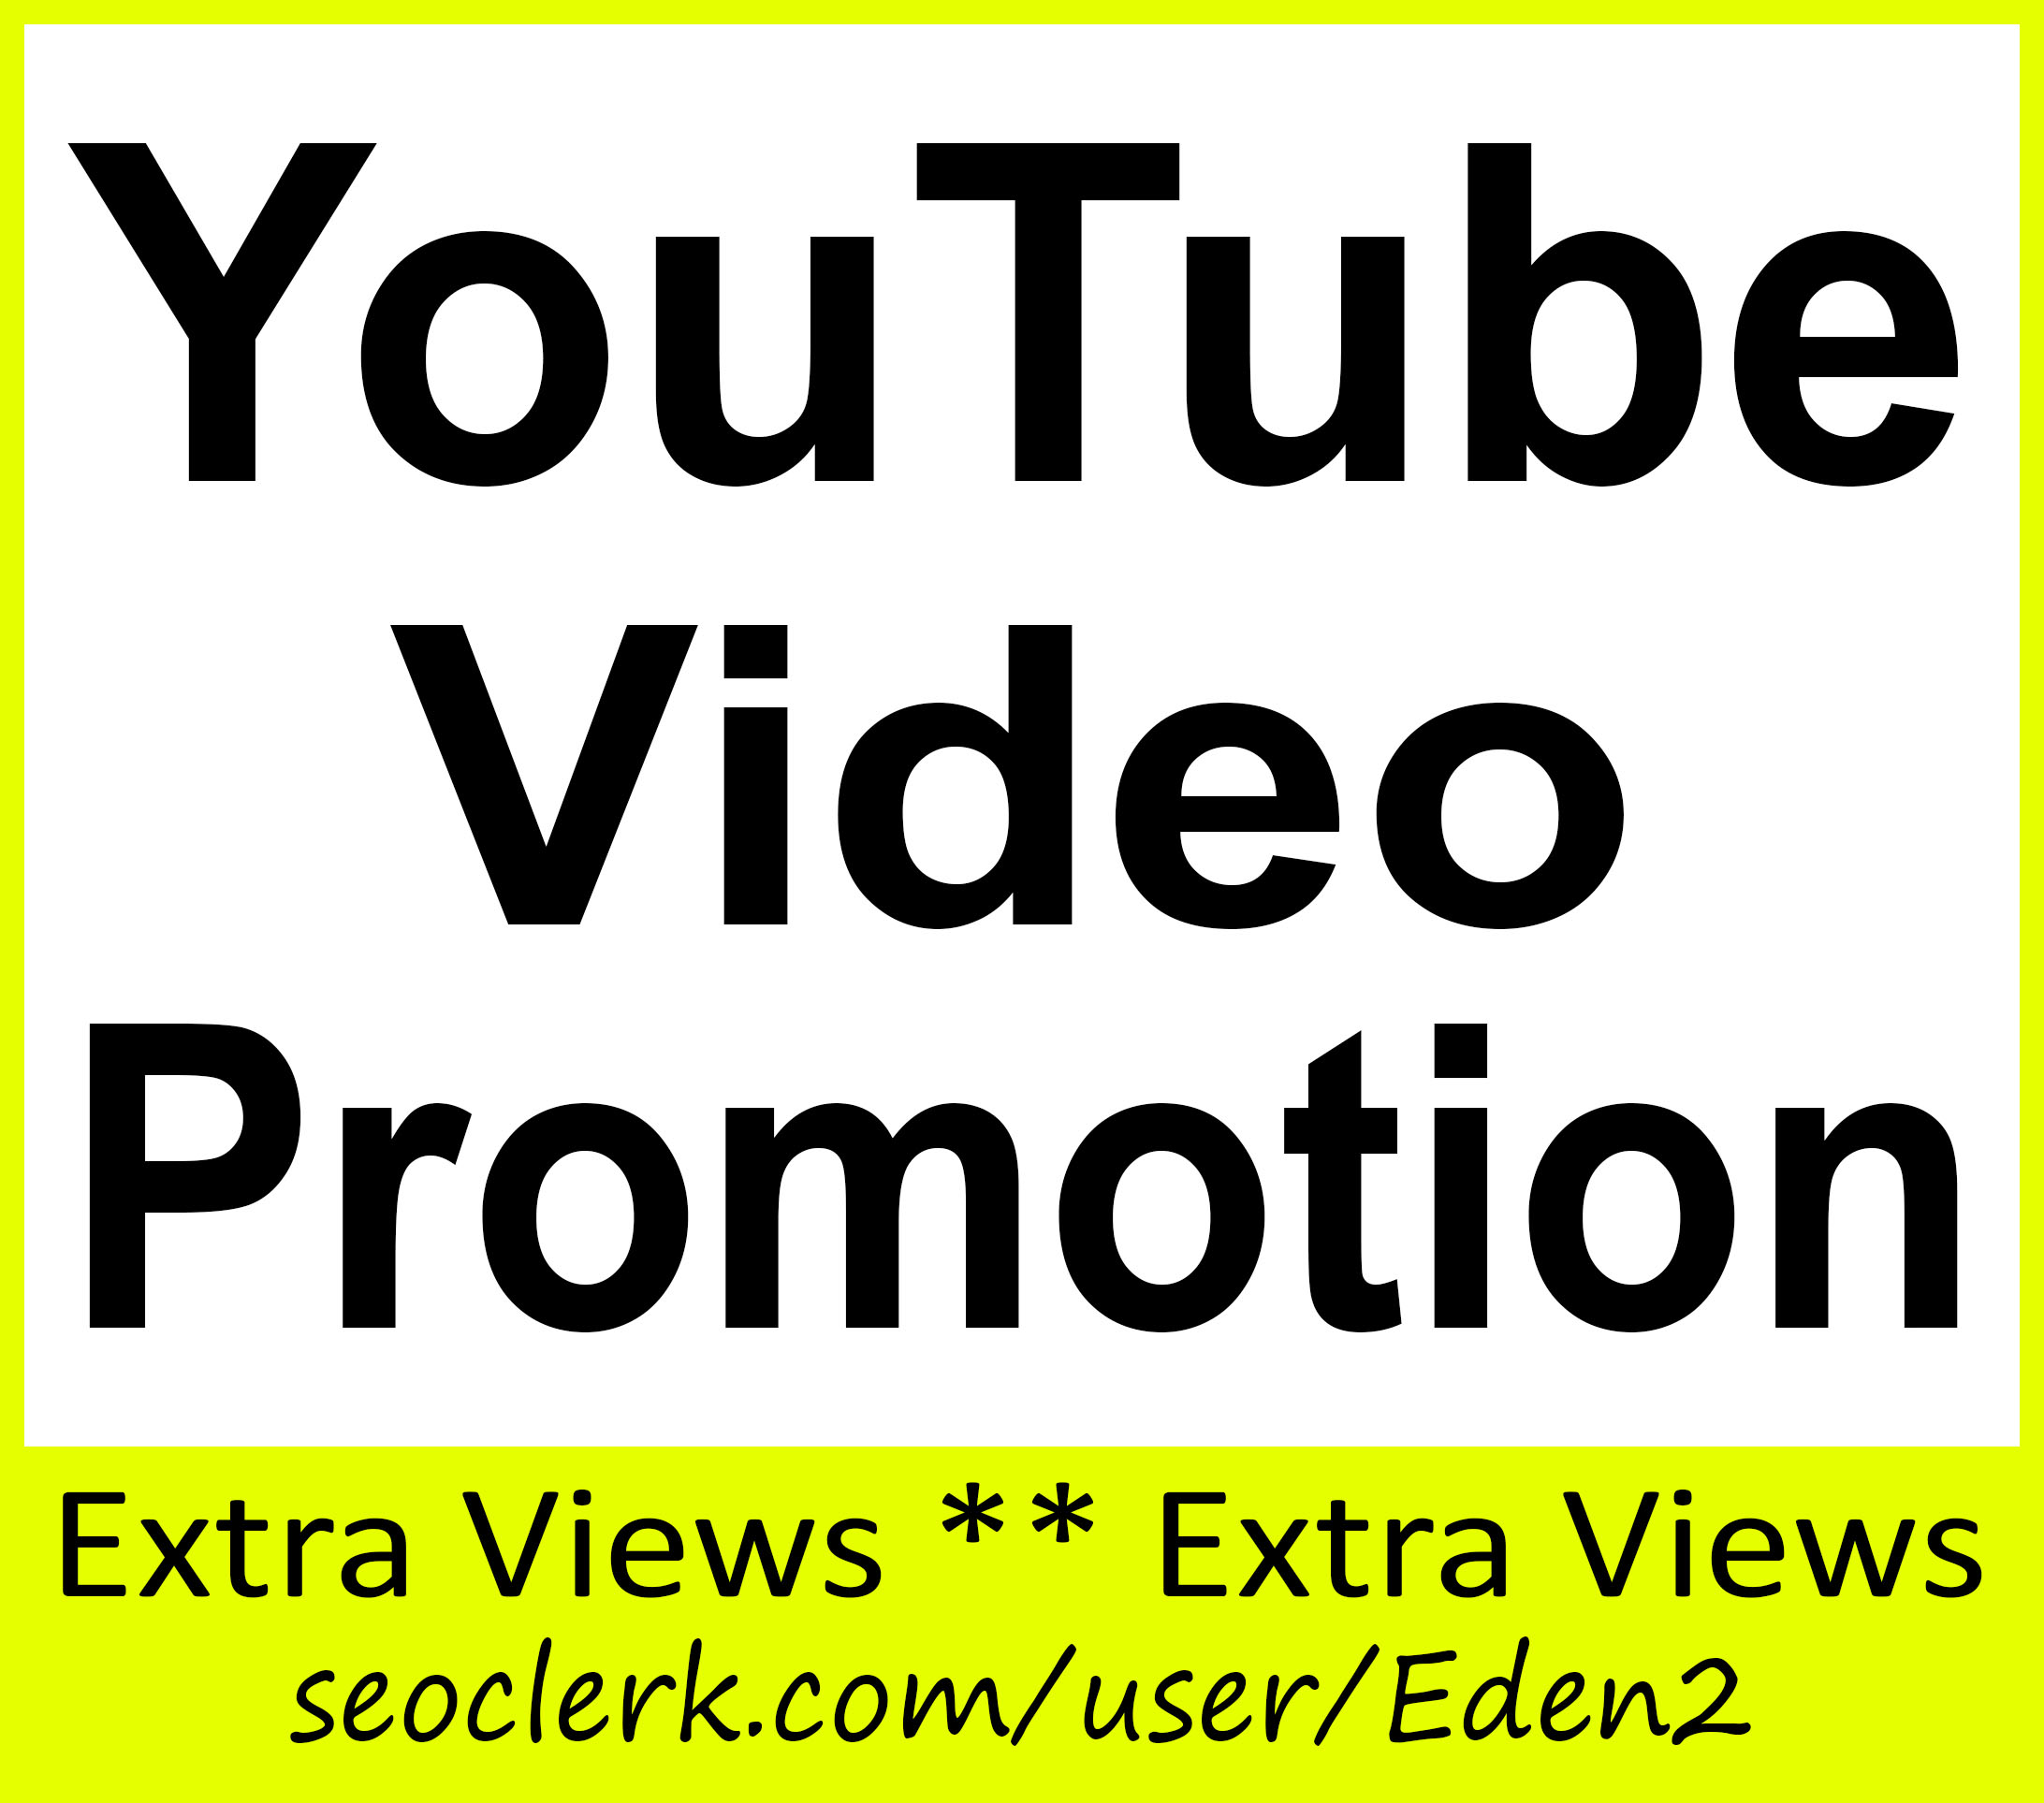 YouTube Video Promotion High Retention + Good For Ranking